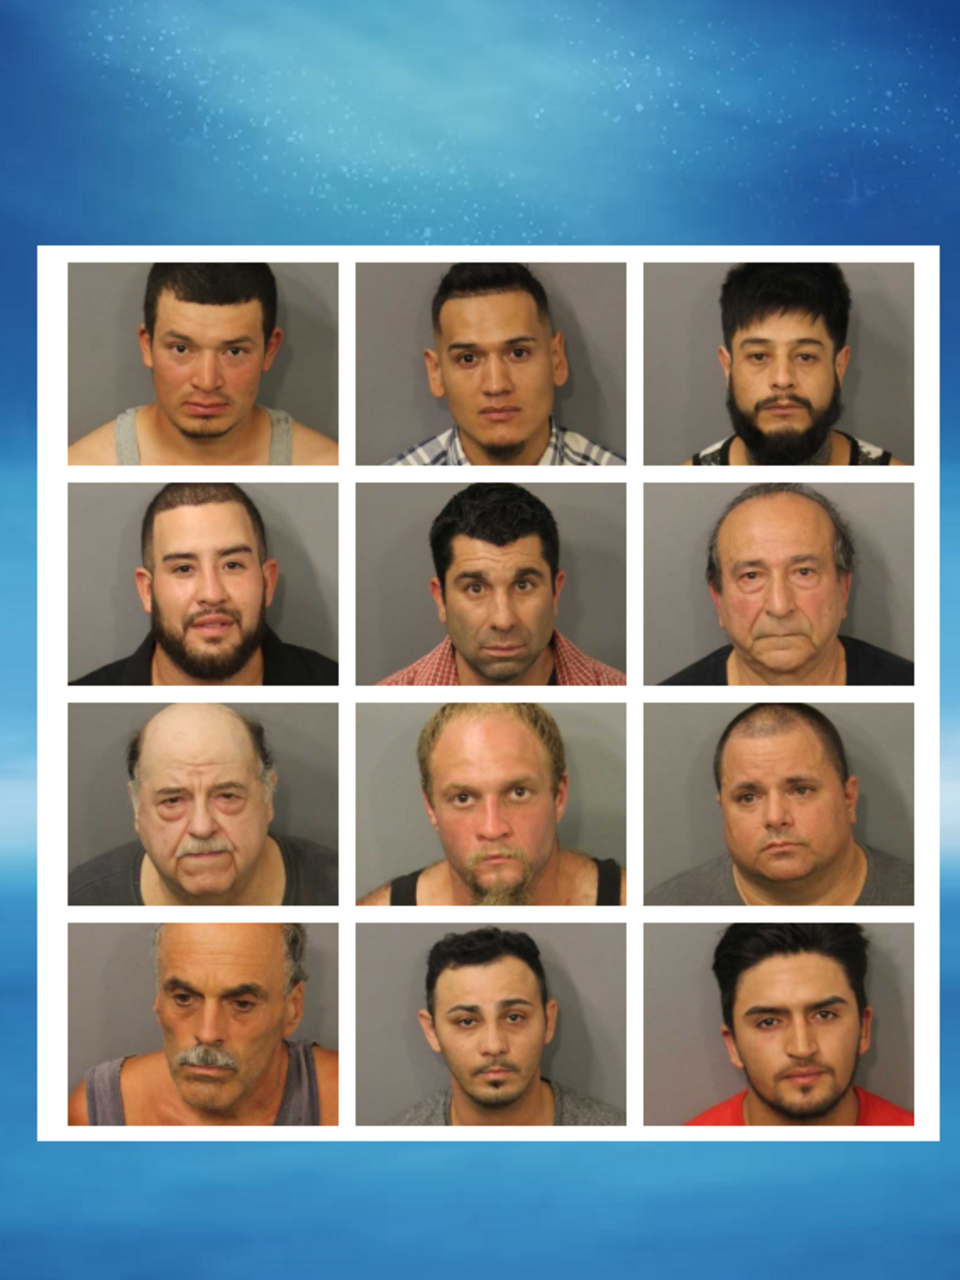 Prostitution sting nabs 7 in Fall River  WJAR